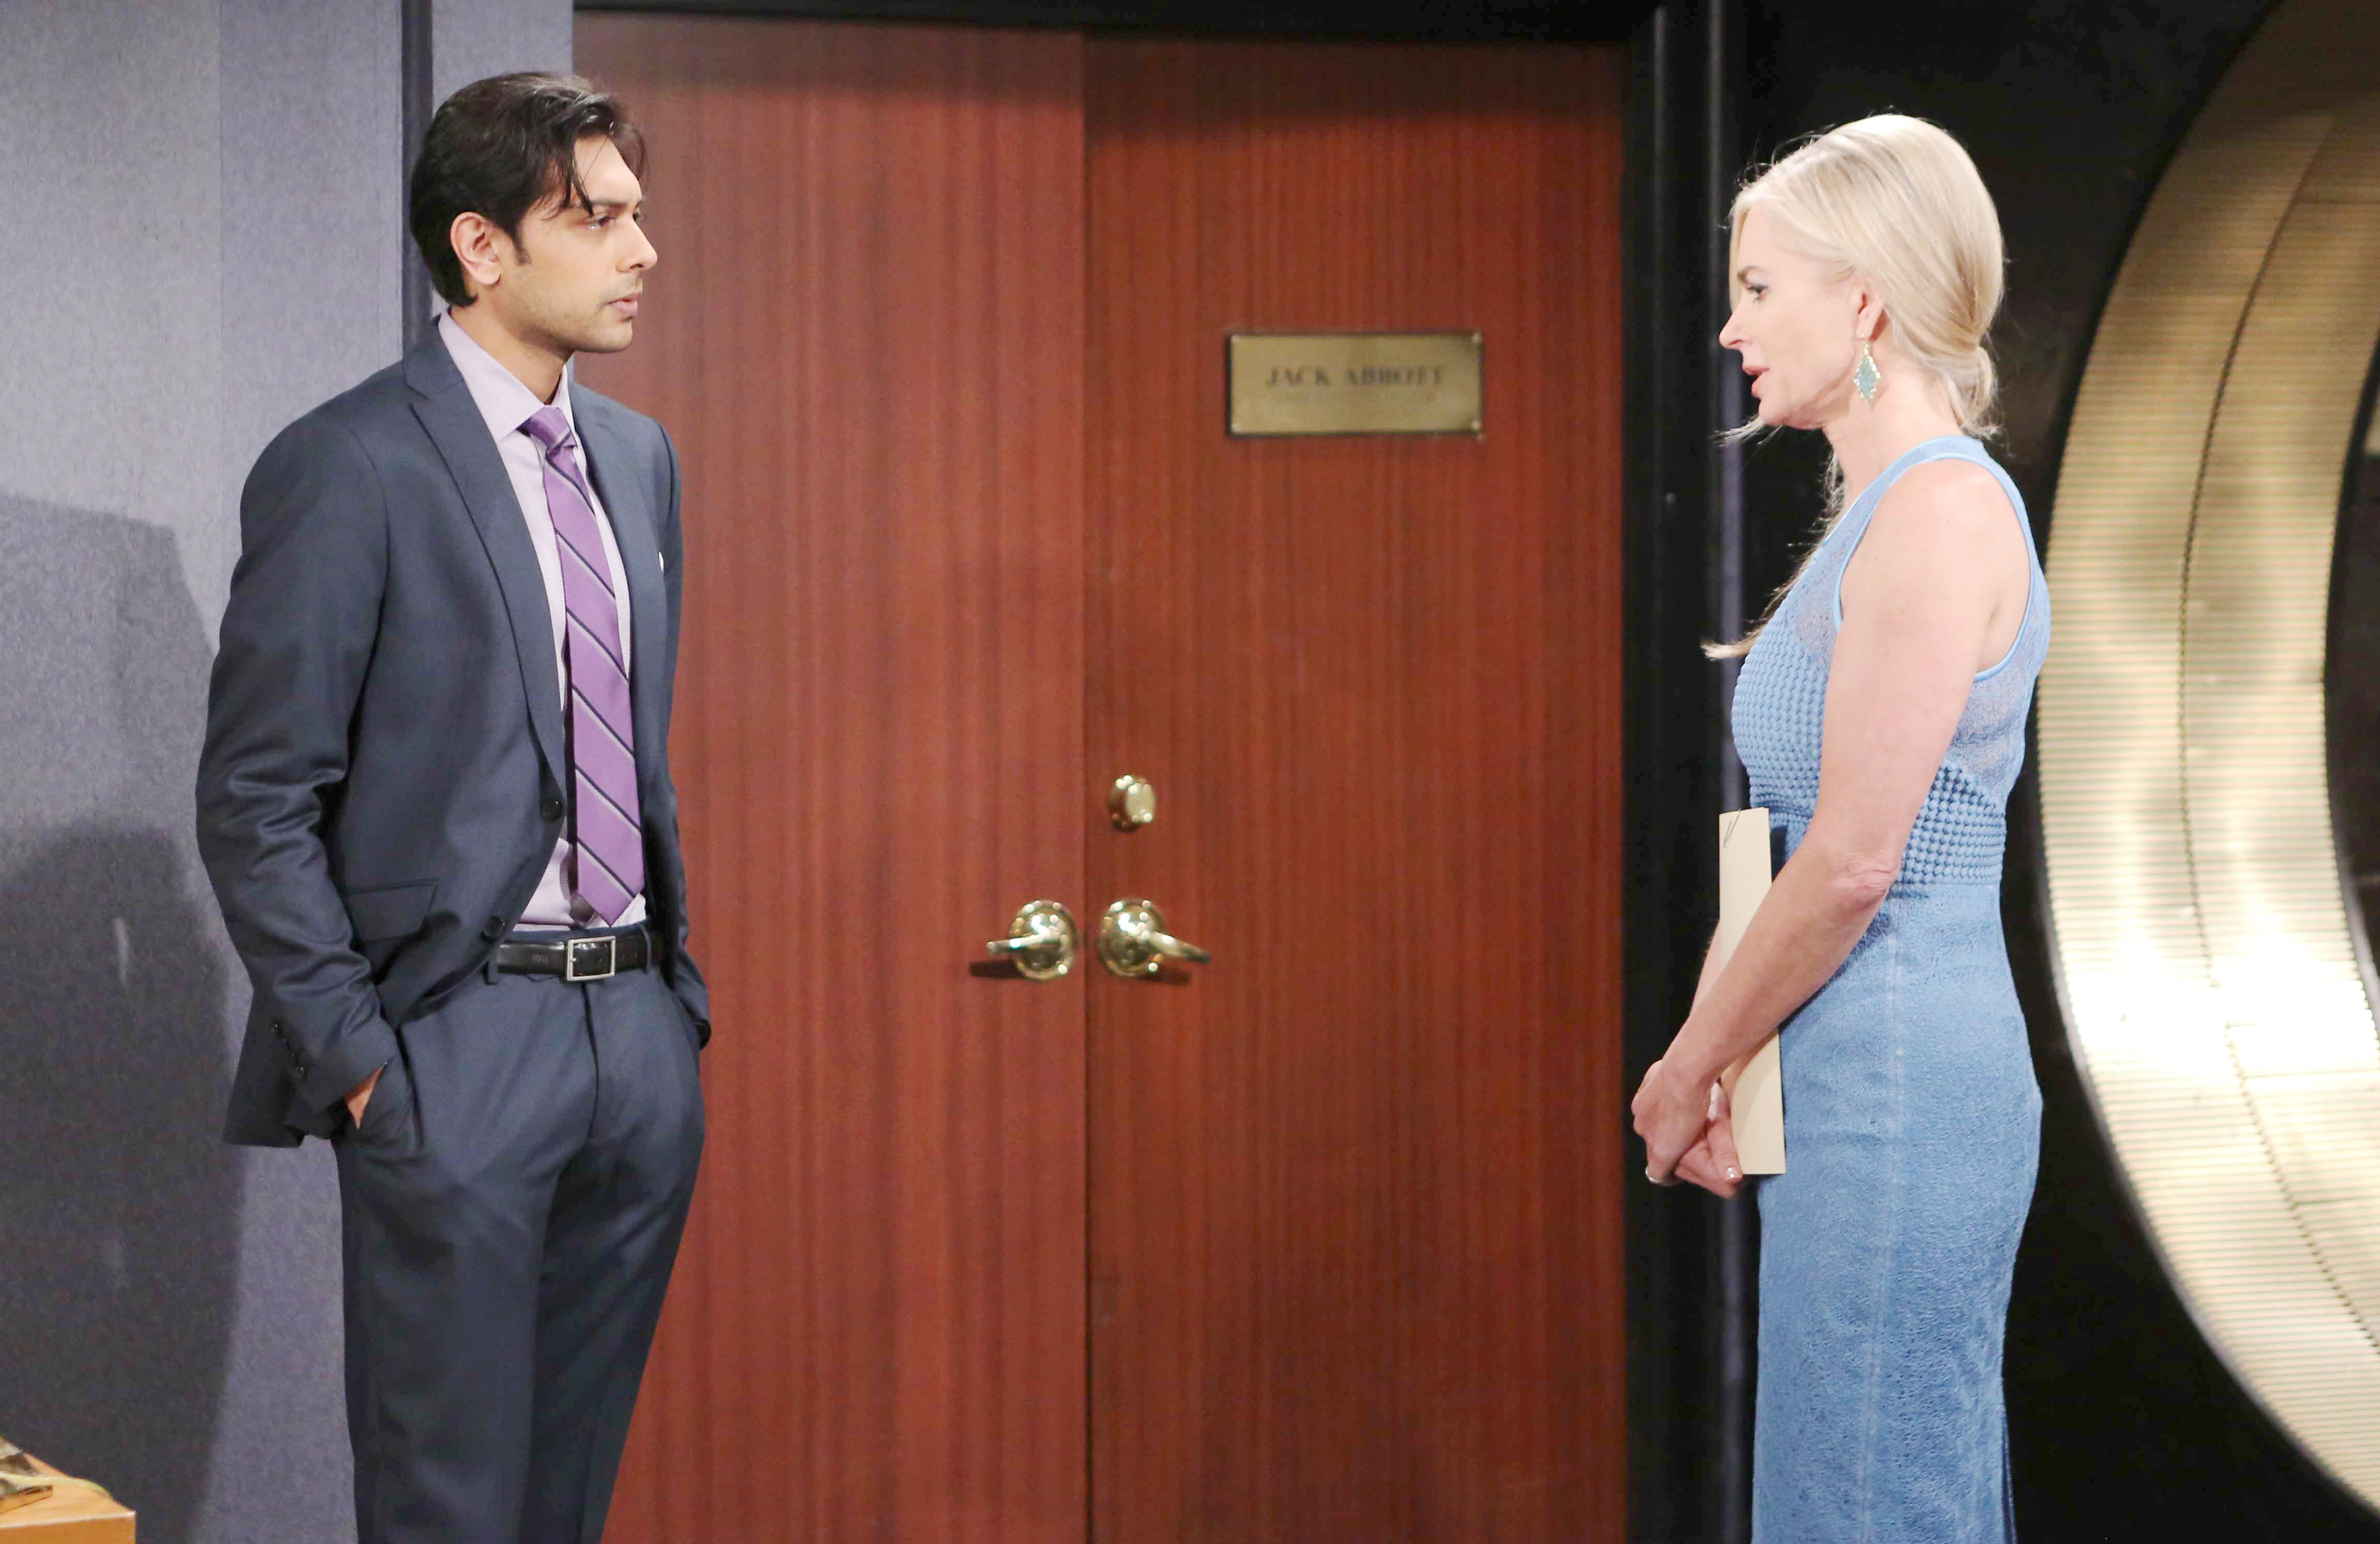 The Young and the Restless- Episode 11167